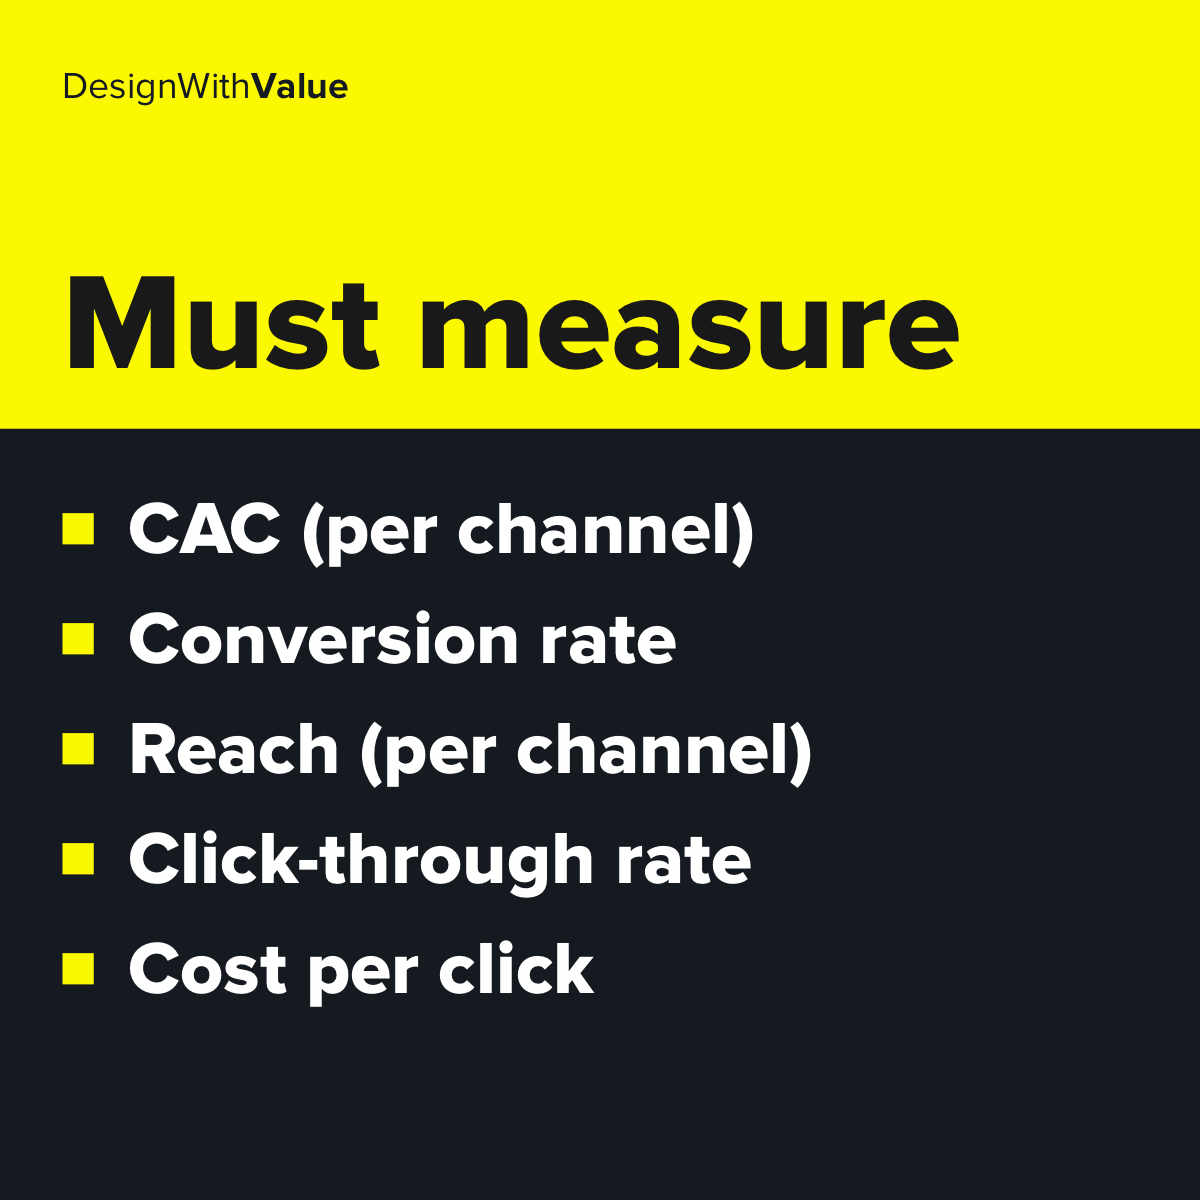 List of metrics: CAC, conversion rate, reach per channel, click through rate, cost per click